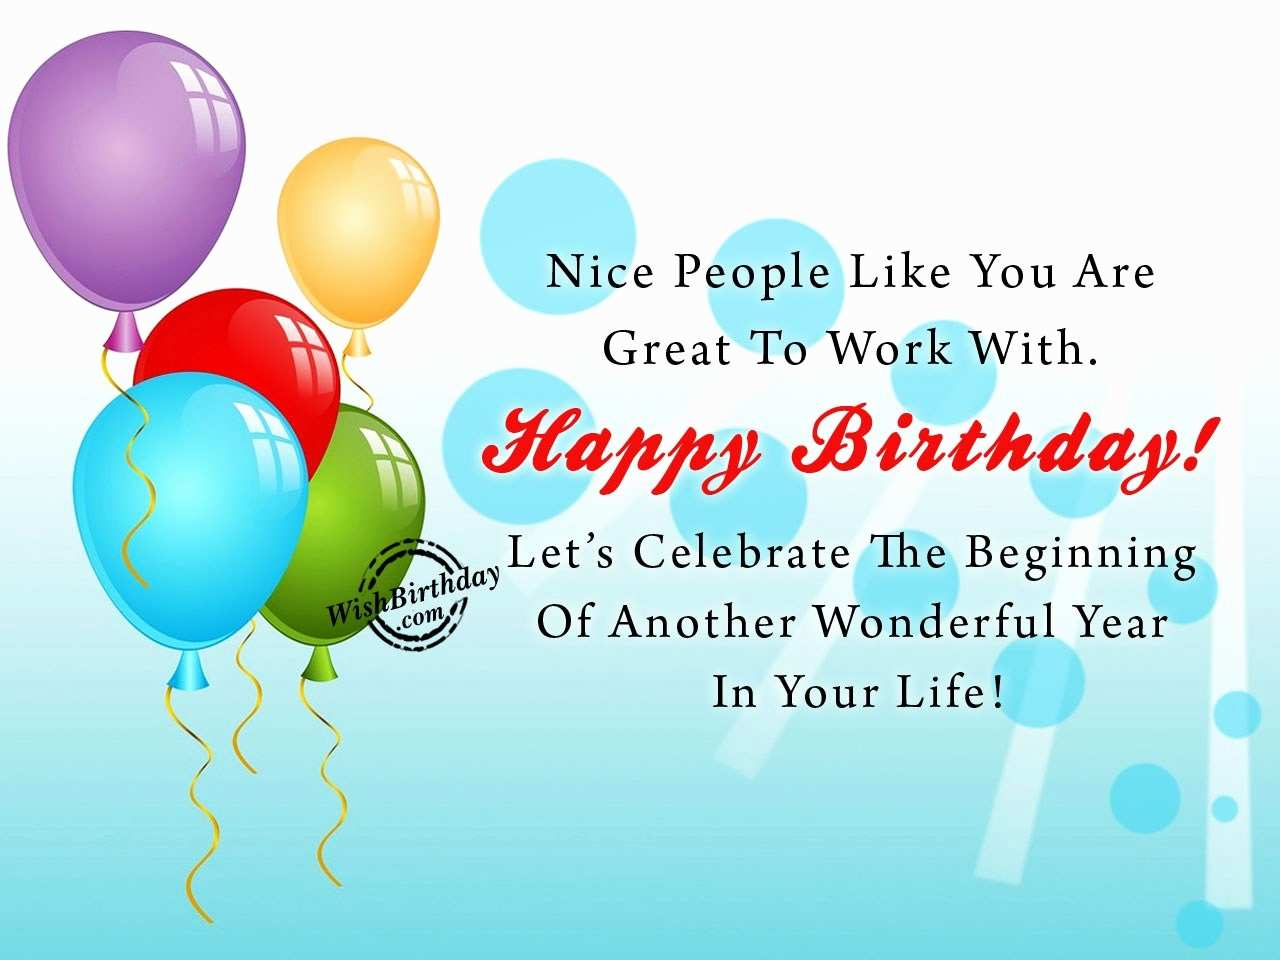 birthday message to a work colleague ; co-worker-birthday-wishes-inspirational-superb-happy-birthday-wishes-for-work-colleague-mccarthy-travels-of-co-worker-birthday-wishes